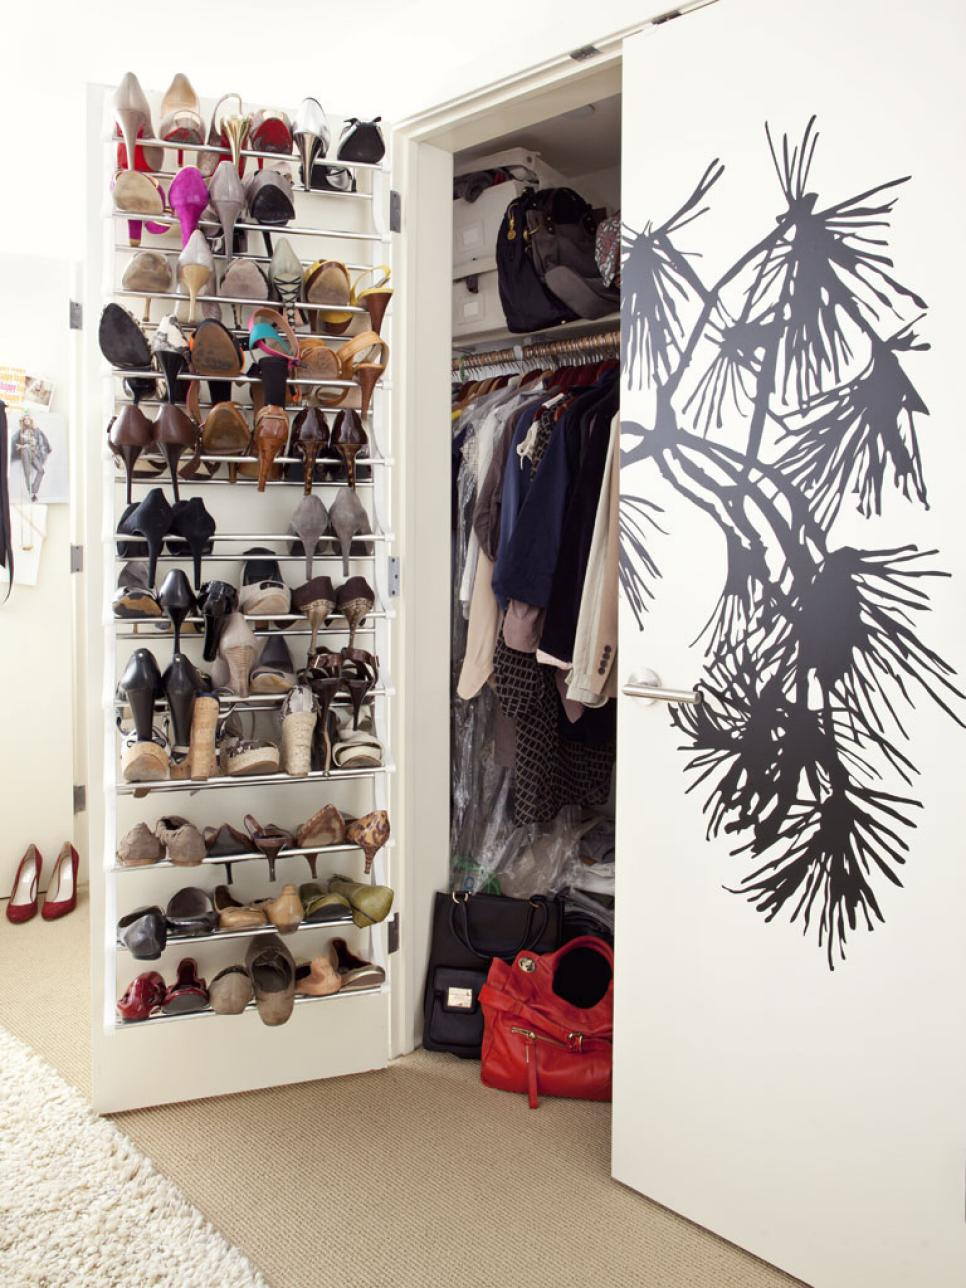 Original_Brian-Patrick-Flynn-Small-Space-Blogger-Shoe-Rack_shoe-storage_hgtv_s3x4.jpg.rend.hgtvcom.966.1288.jpeg